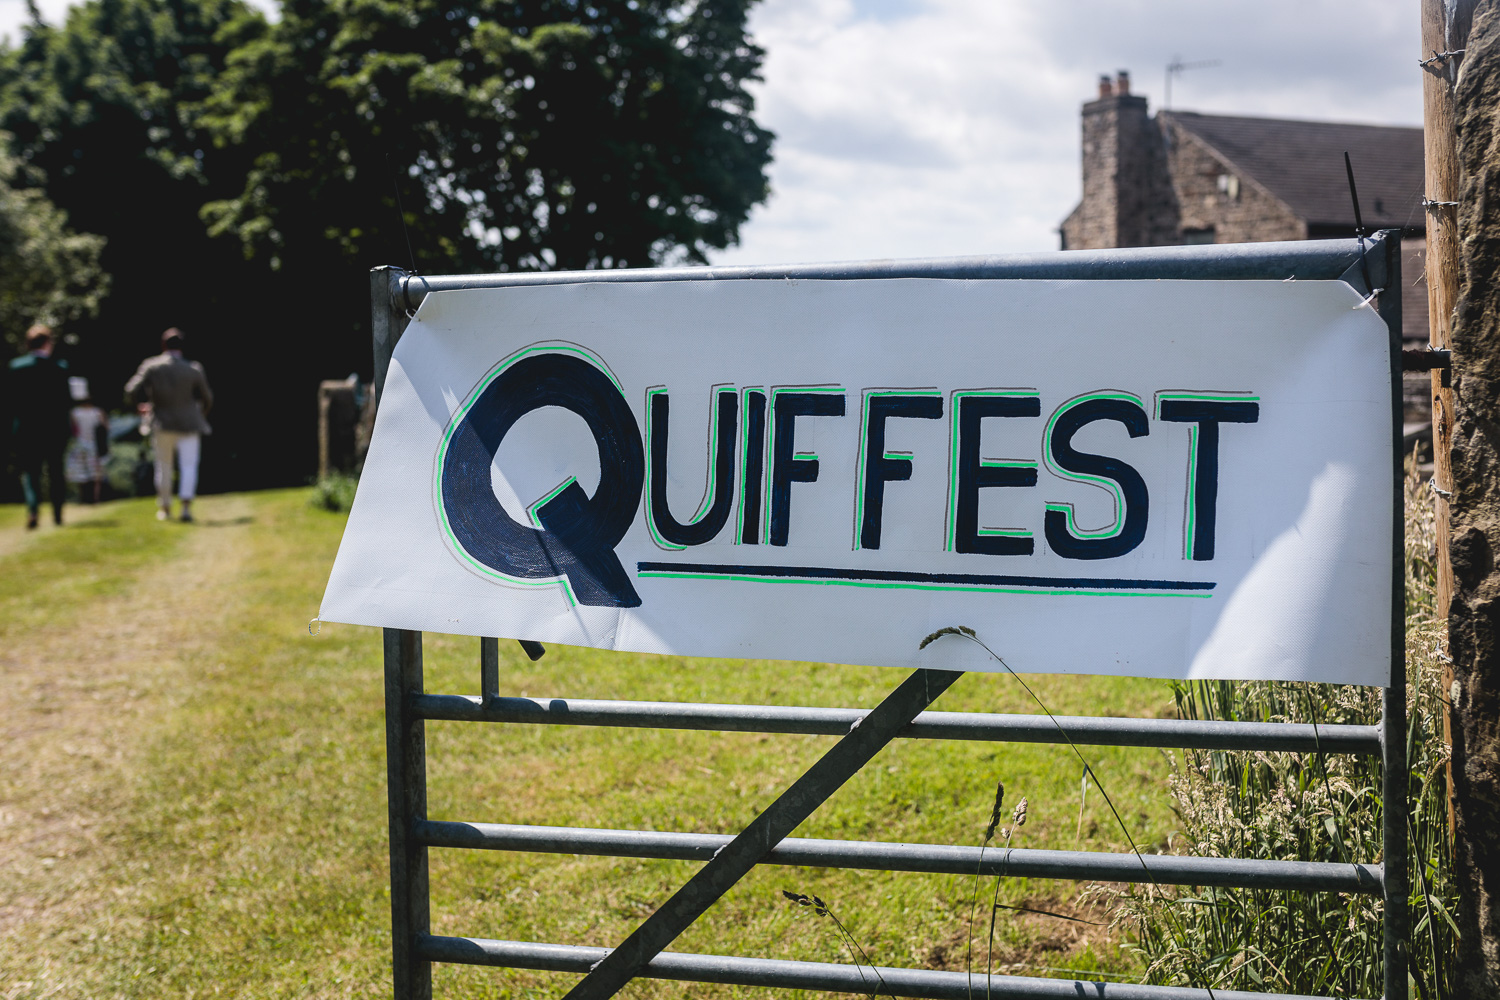 Hand Painted Festival wedding sign that reads 'Quiffest' attached to gate at entrance to field for wedding in sheffield